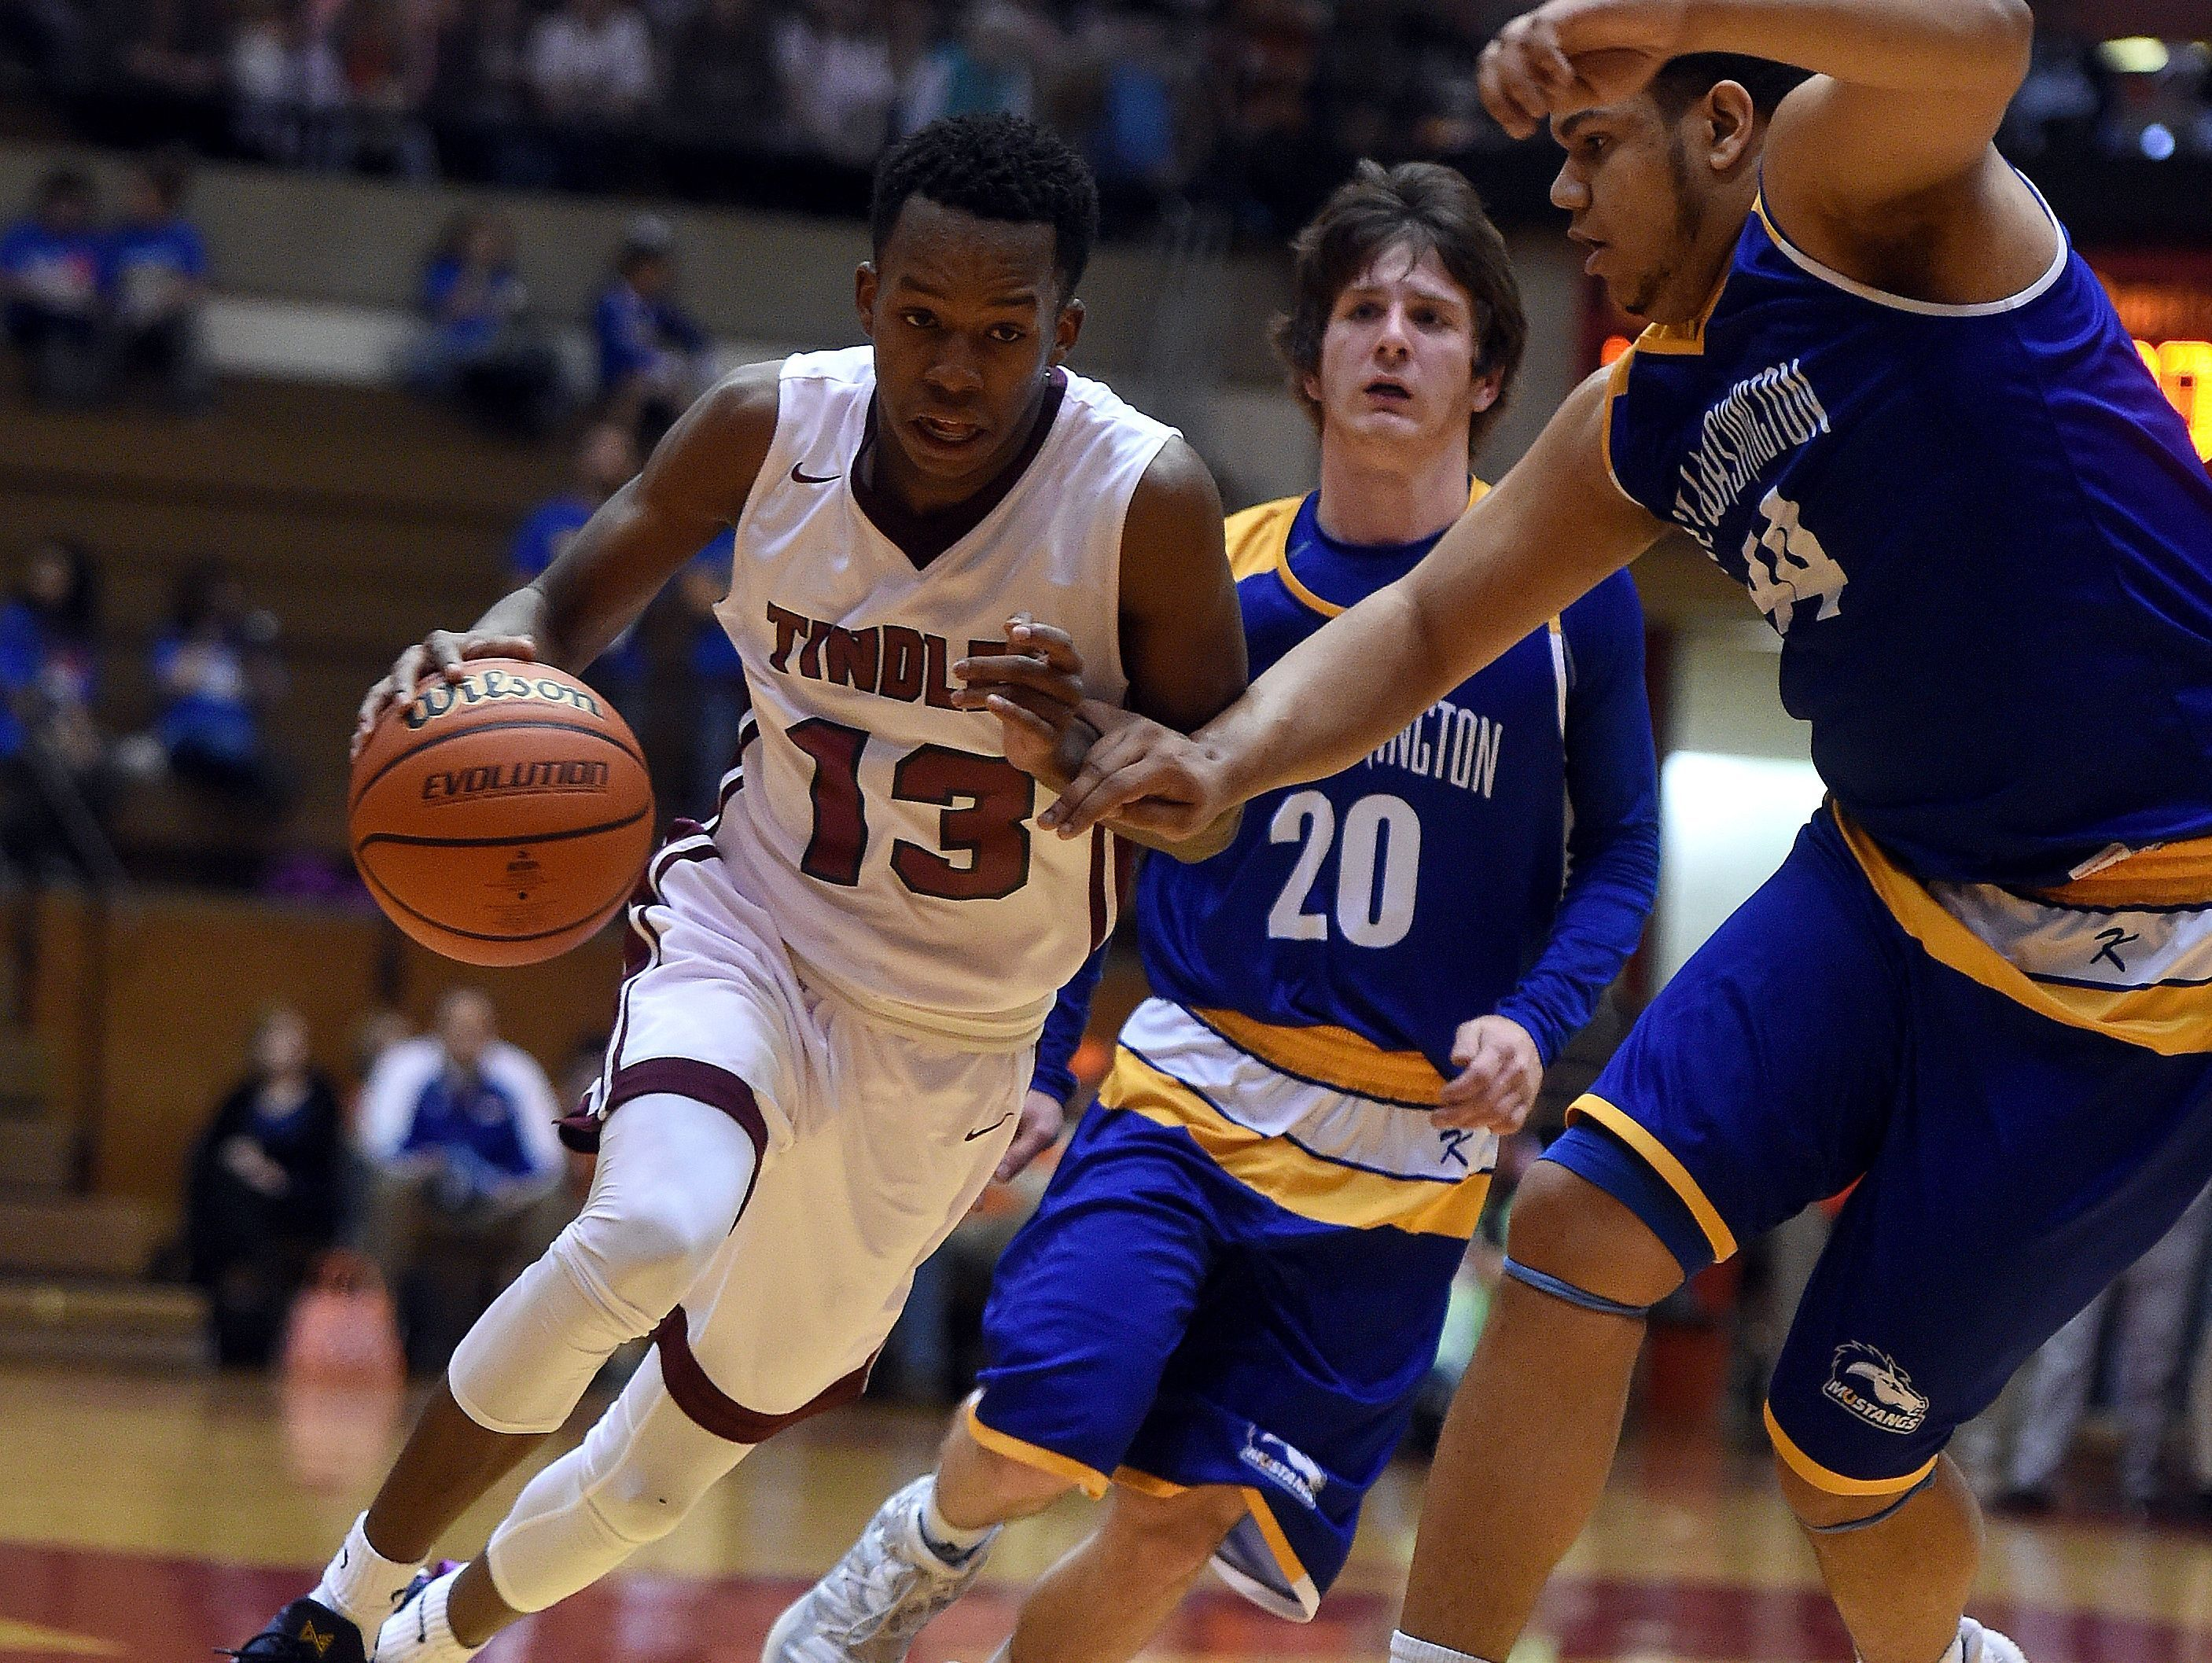 Tindley's Eric Hunter moves the ball against New Washington's Brandon Horton and Stevie Mack Saturday, March 18, 2017 during the Class A basketball semi-state championship in the Tiernan Center at Richmond.